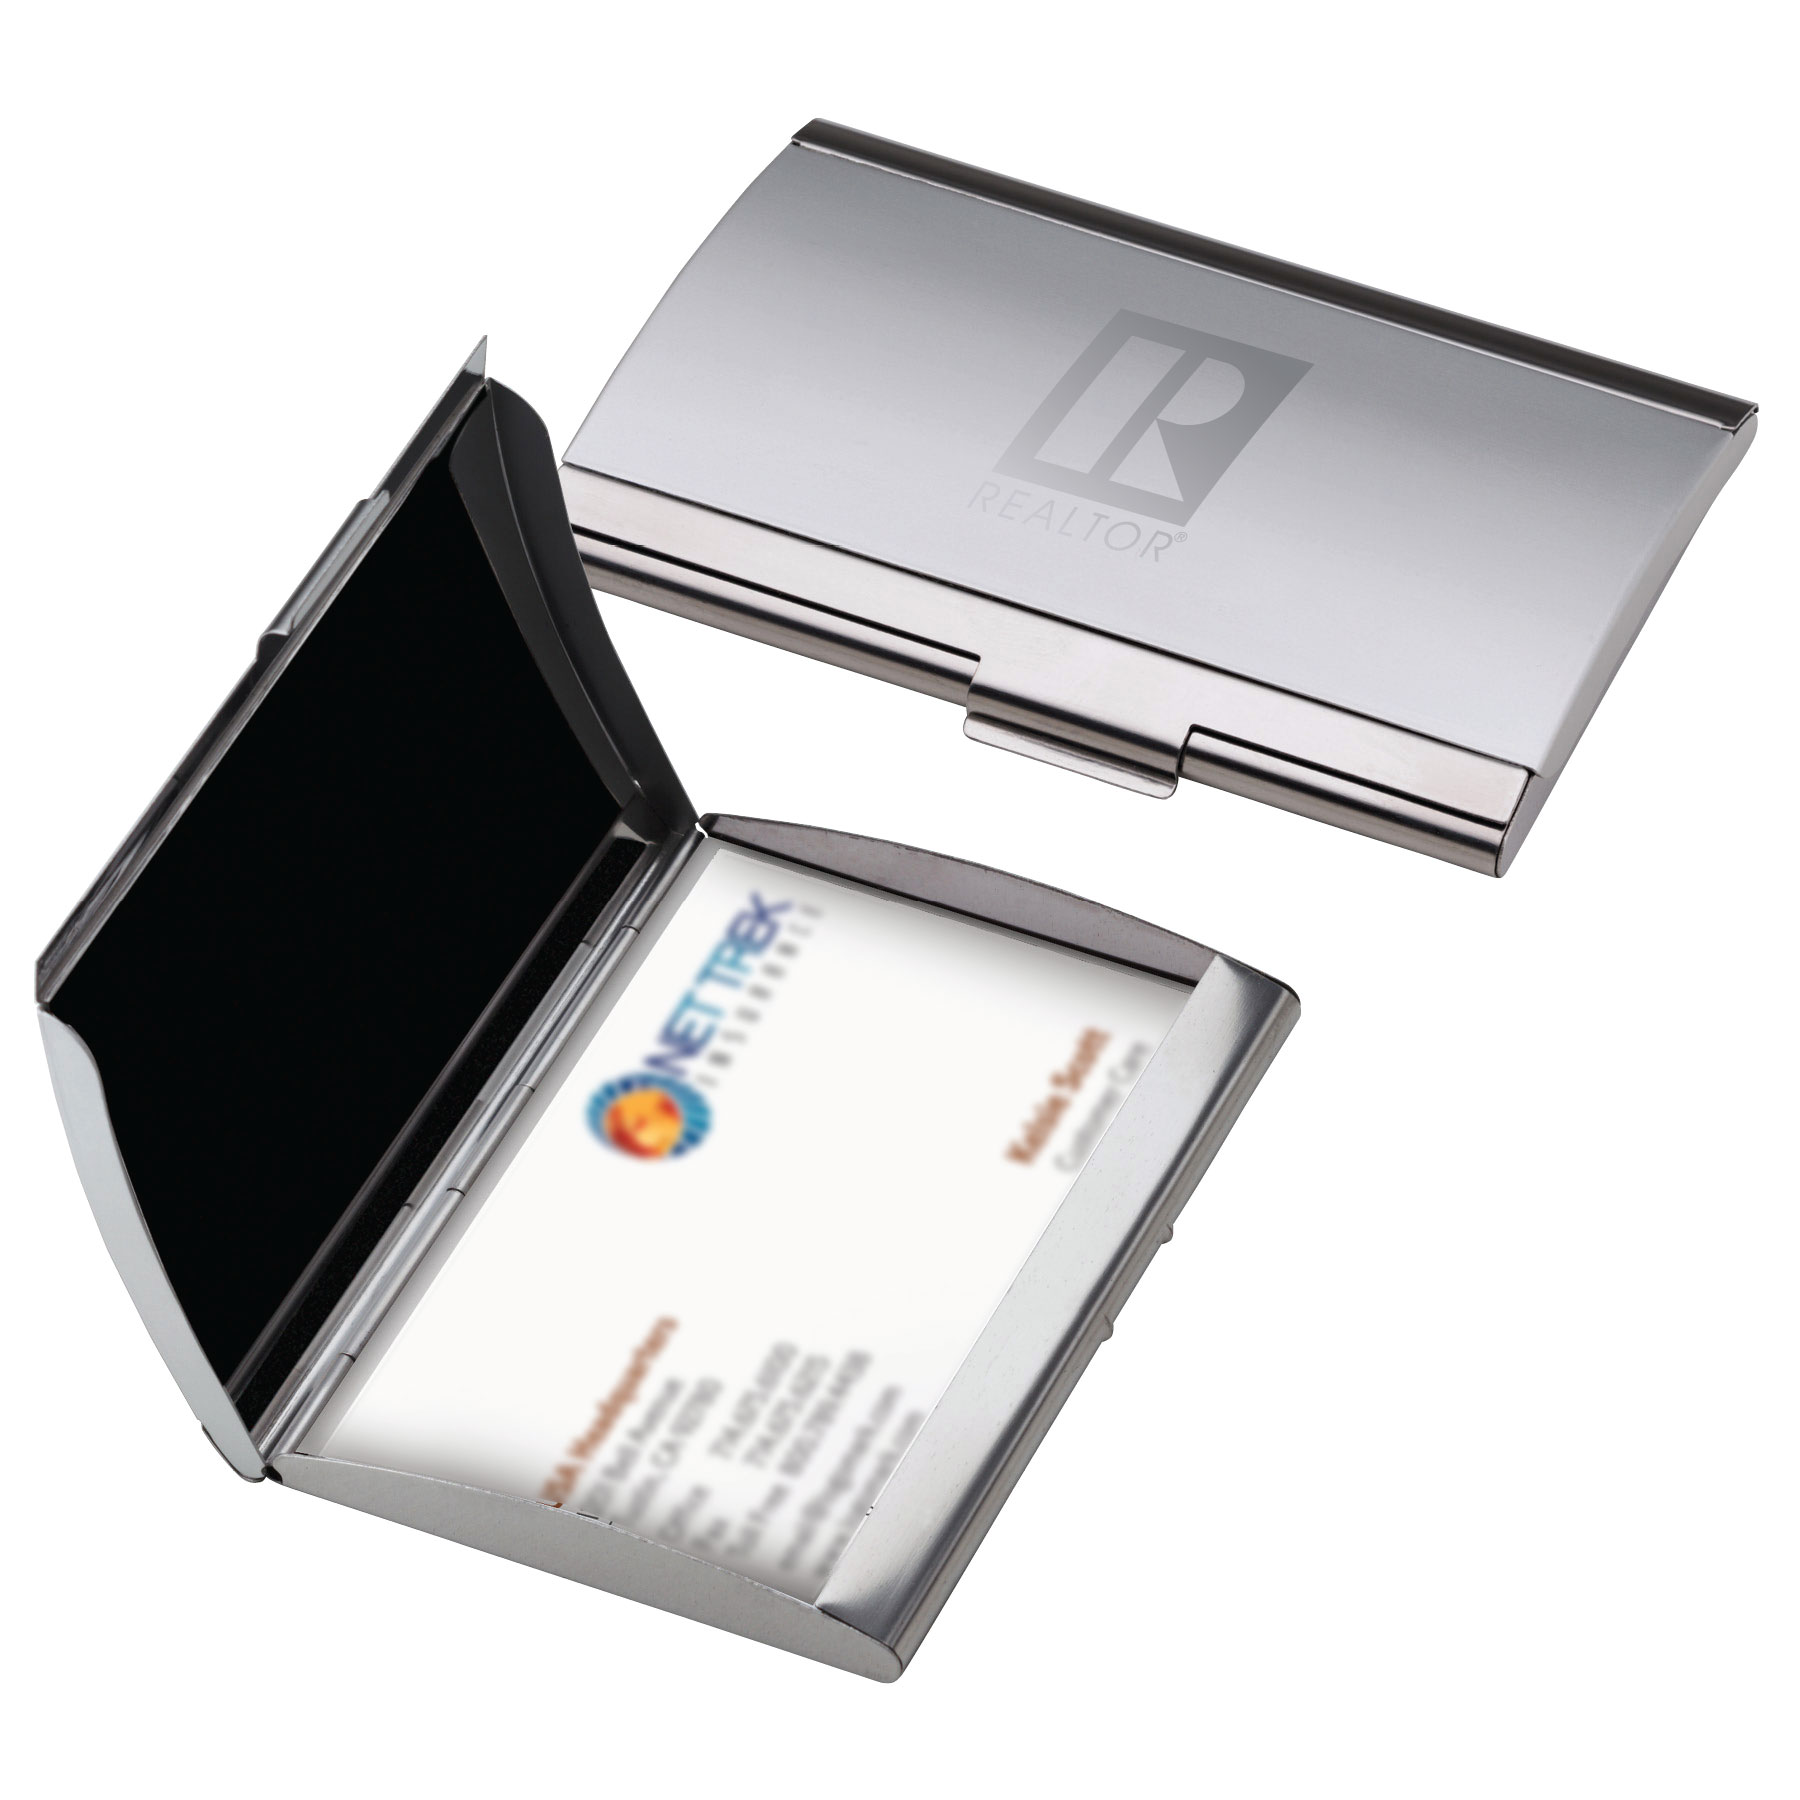 Realtor carbon mesh business card case rts4676 denver business card case cardsbusinesesbusinesscardsholderspurse magicingreecefo Gallery